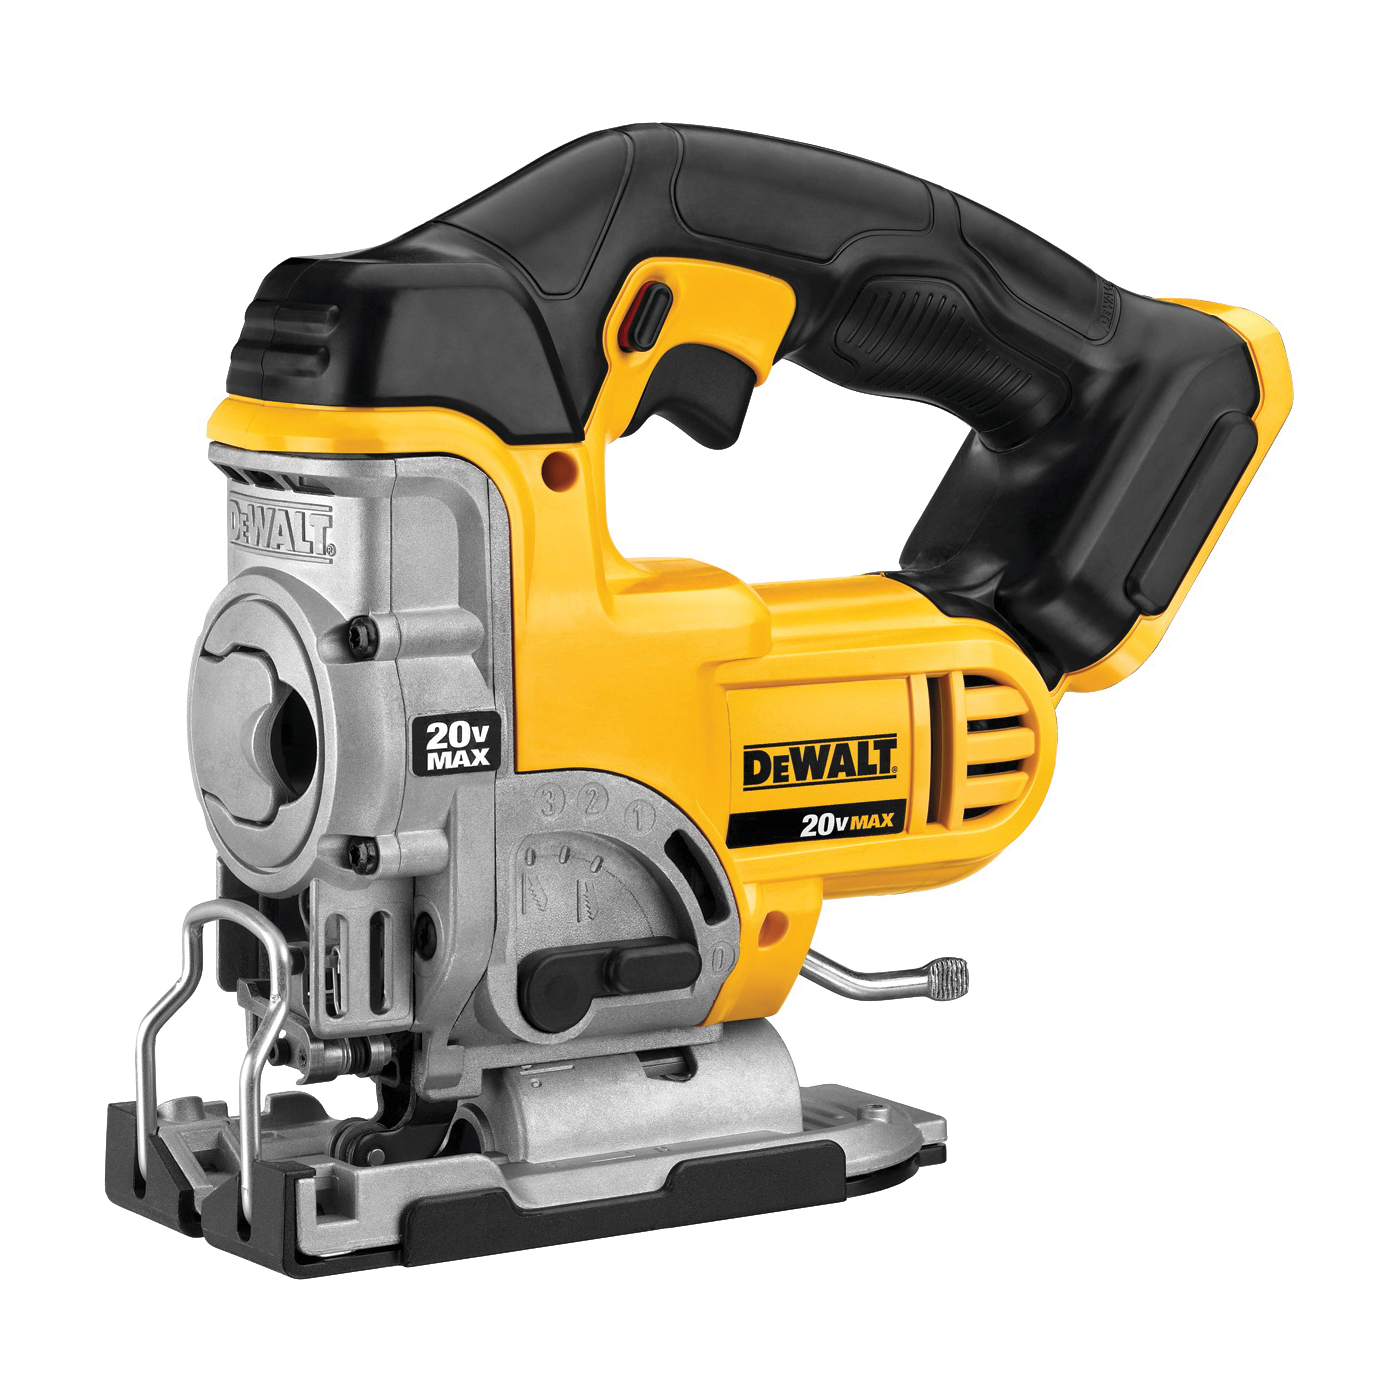 Picture of DeWALT DCS331B Jig Saw, Bare Tool, 20 V Battery, 3 Ah, 1 in L Stroke, 0 to 3000 spm SPM, Battery Included: No